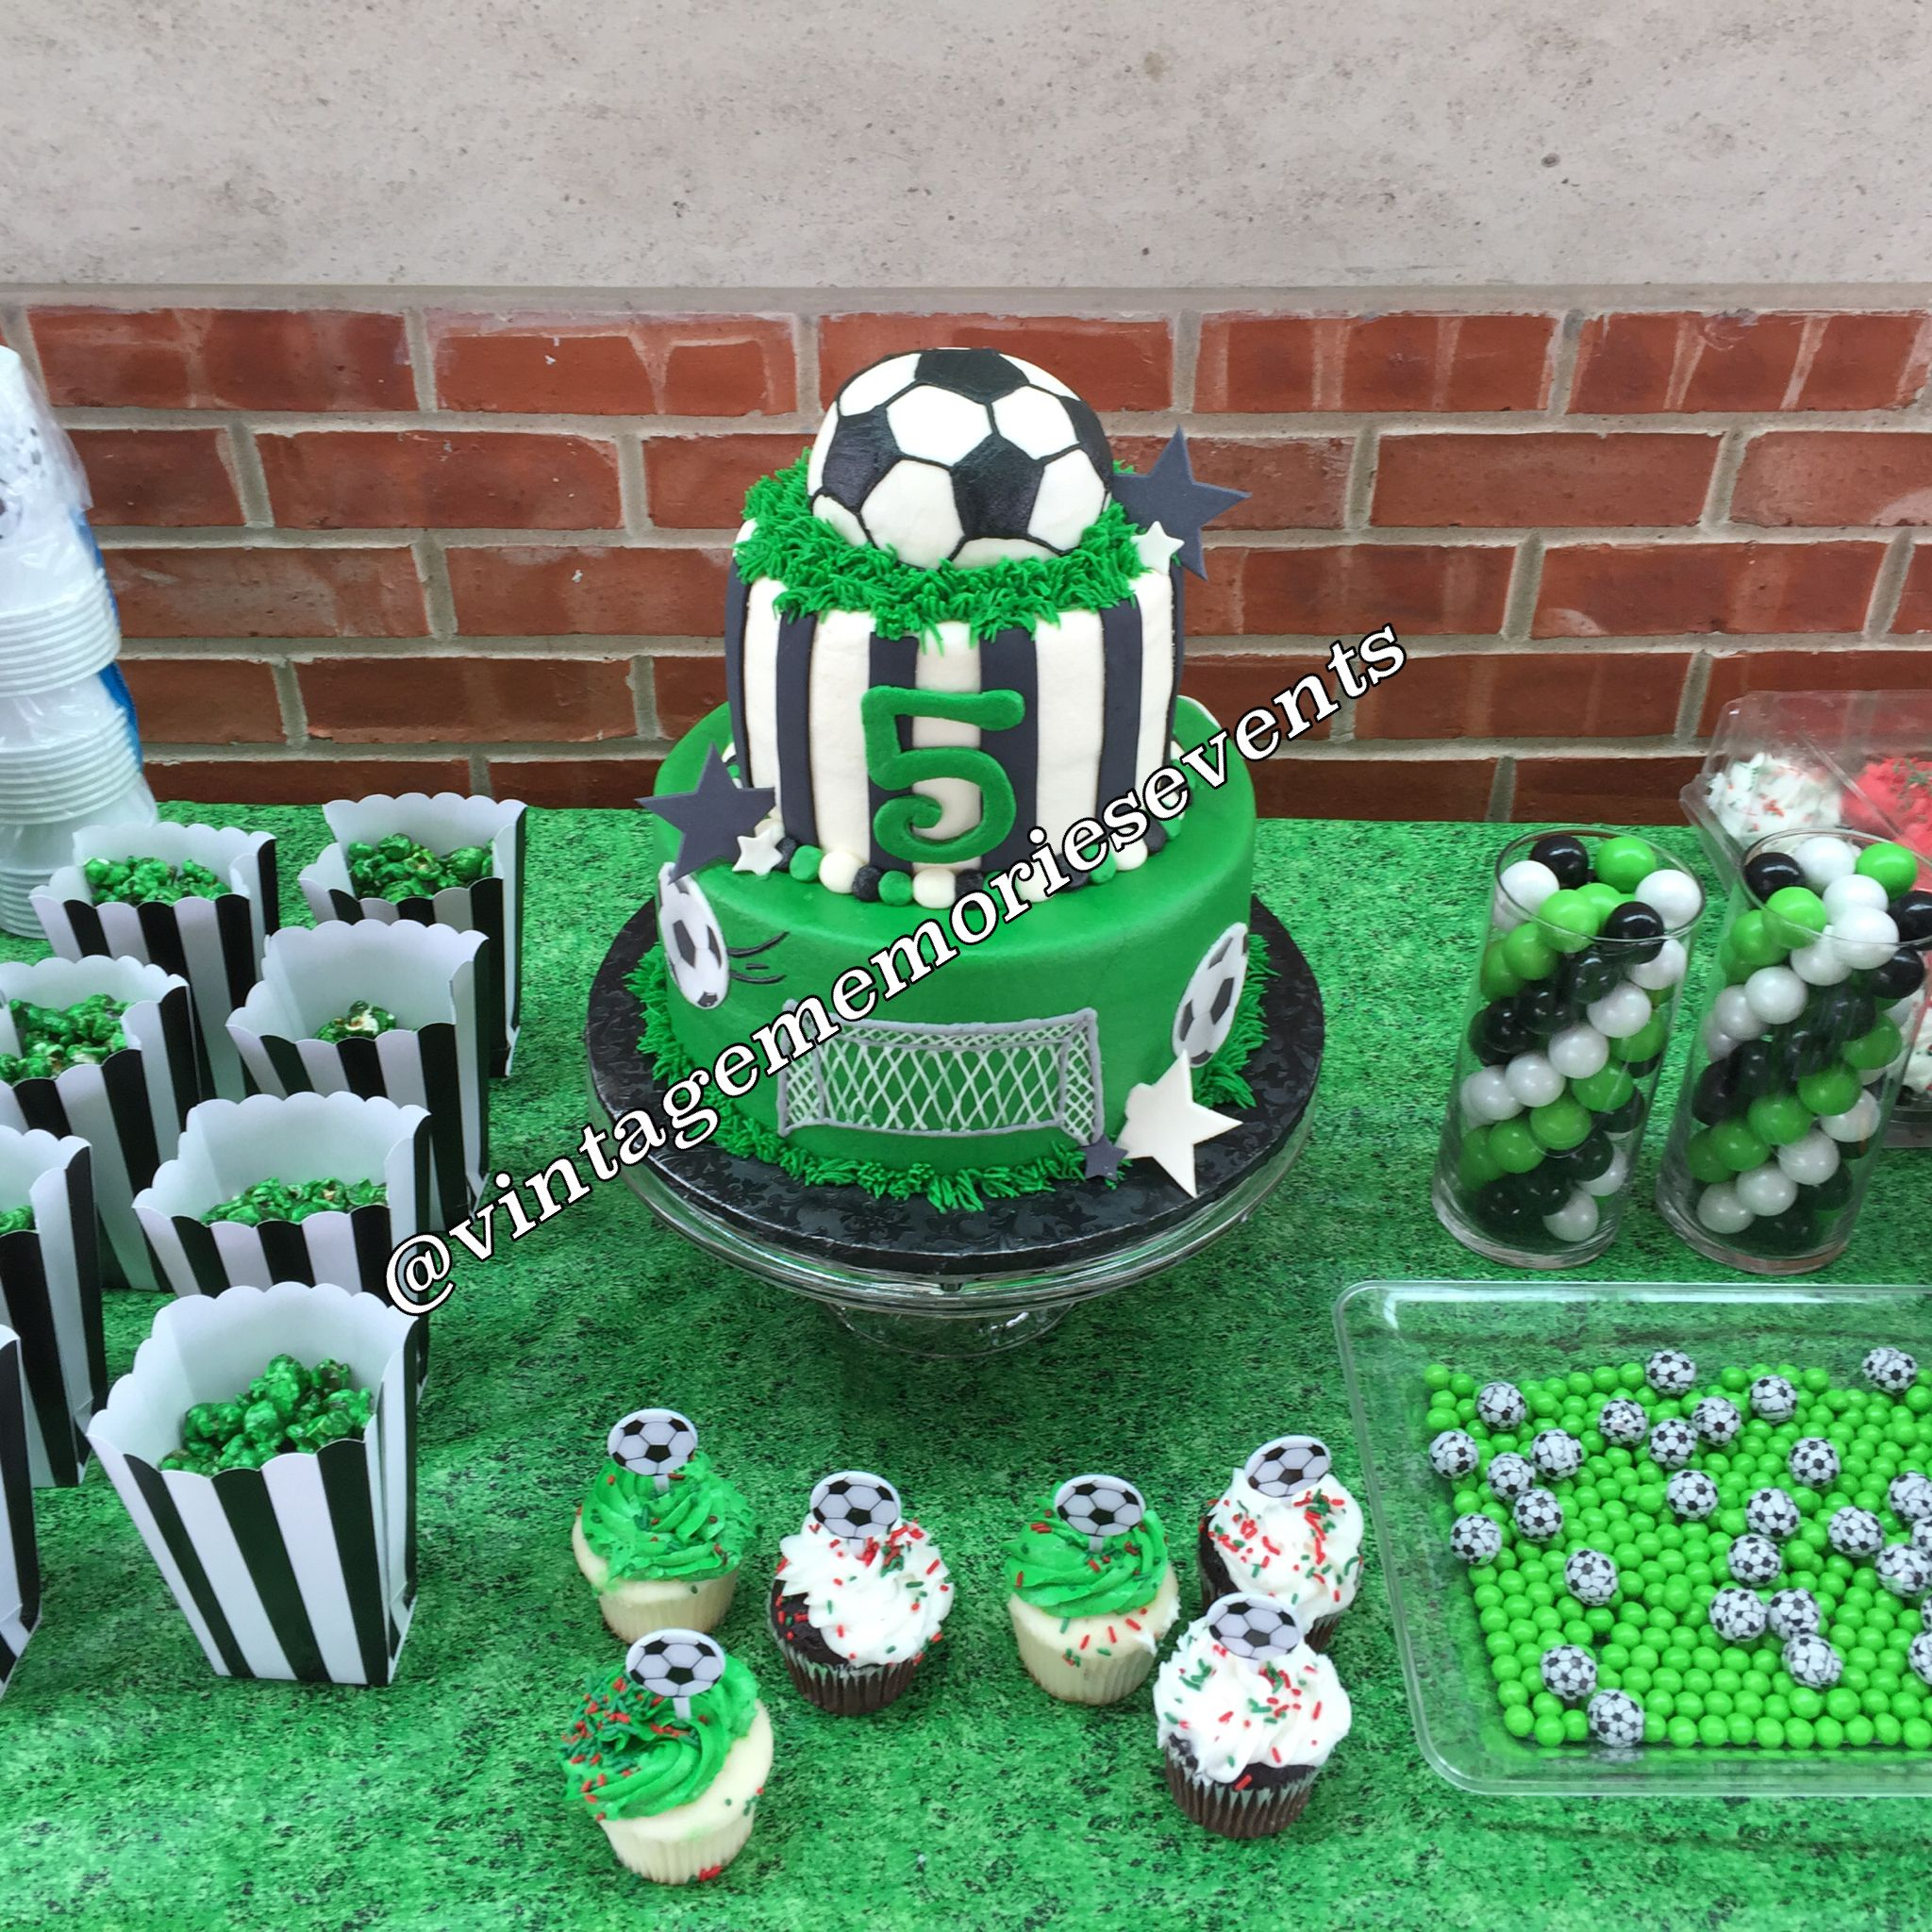 Soccer Themed Birthday Party In Houston Texas